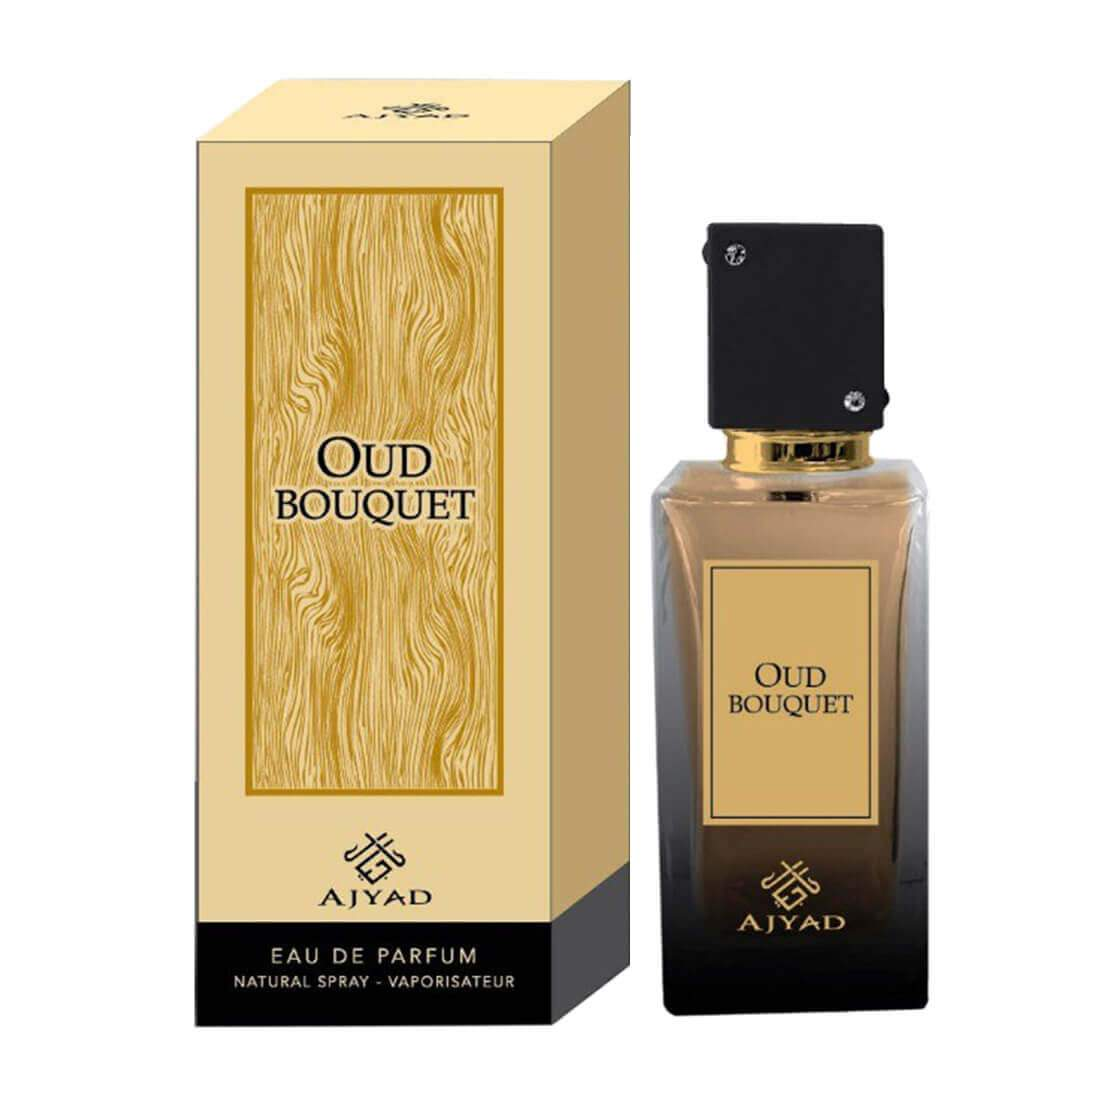 Ajyad Oud Bouquet Spray